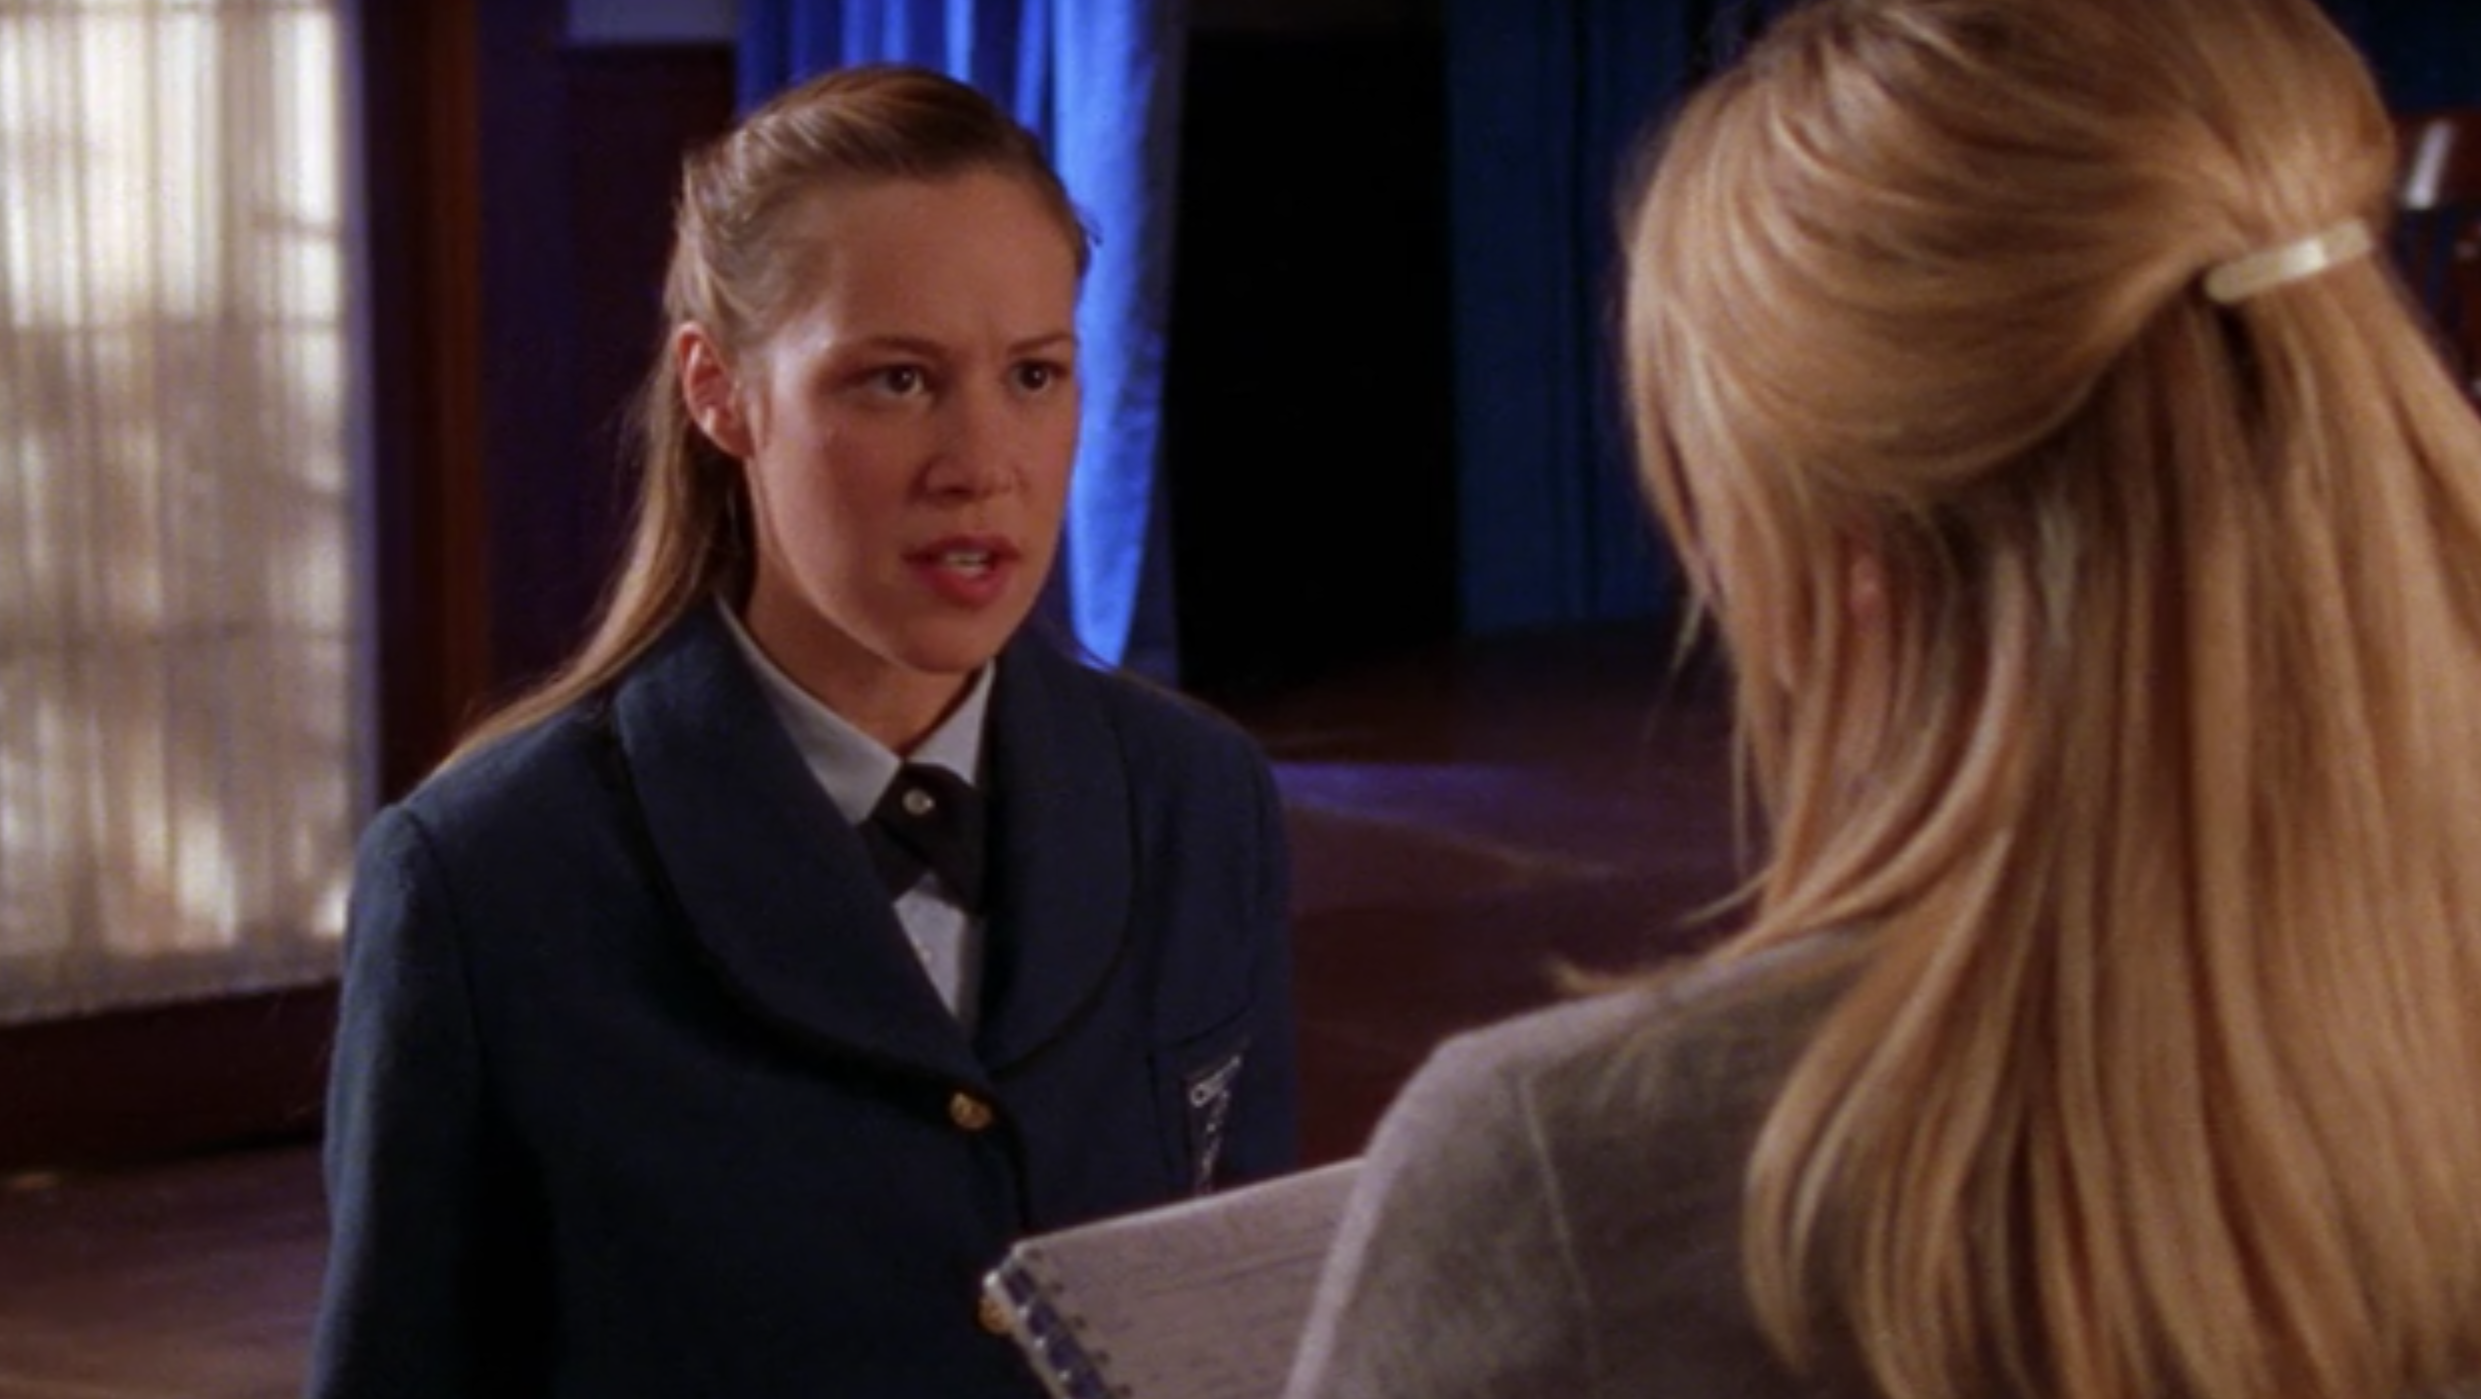 paris geller The 25 Best Teens in TV History